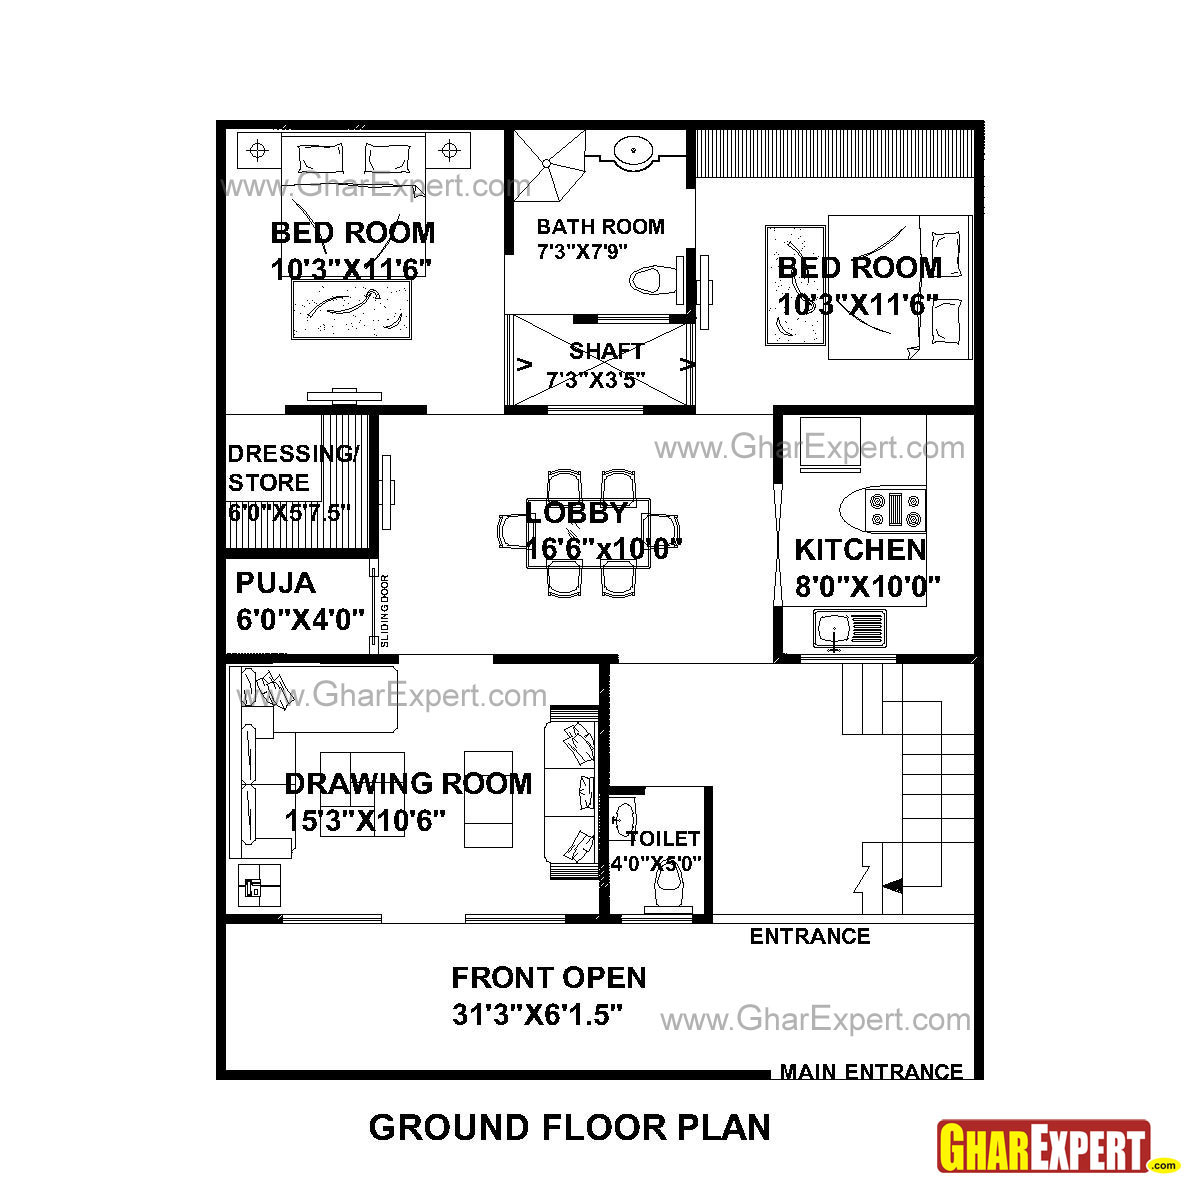 House Plan For 33 Feet By 40 Feet Plot Plot Size 147: House Plan For 32 Feet By 40 Feet Plot (Plot Size 142